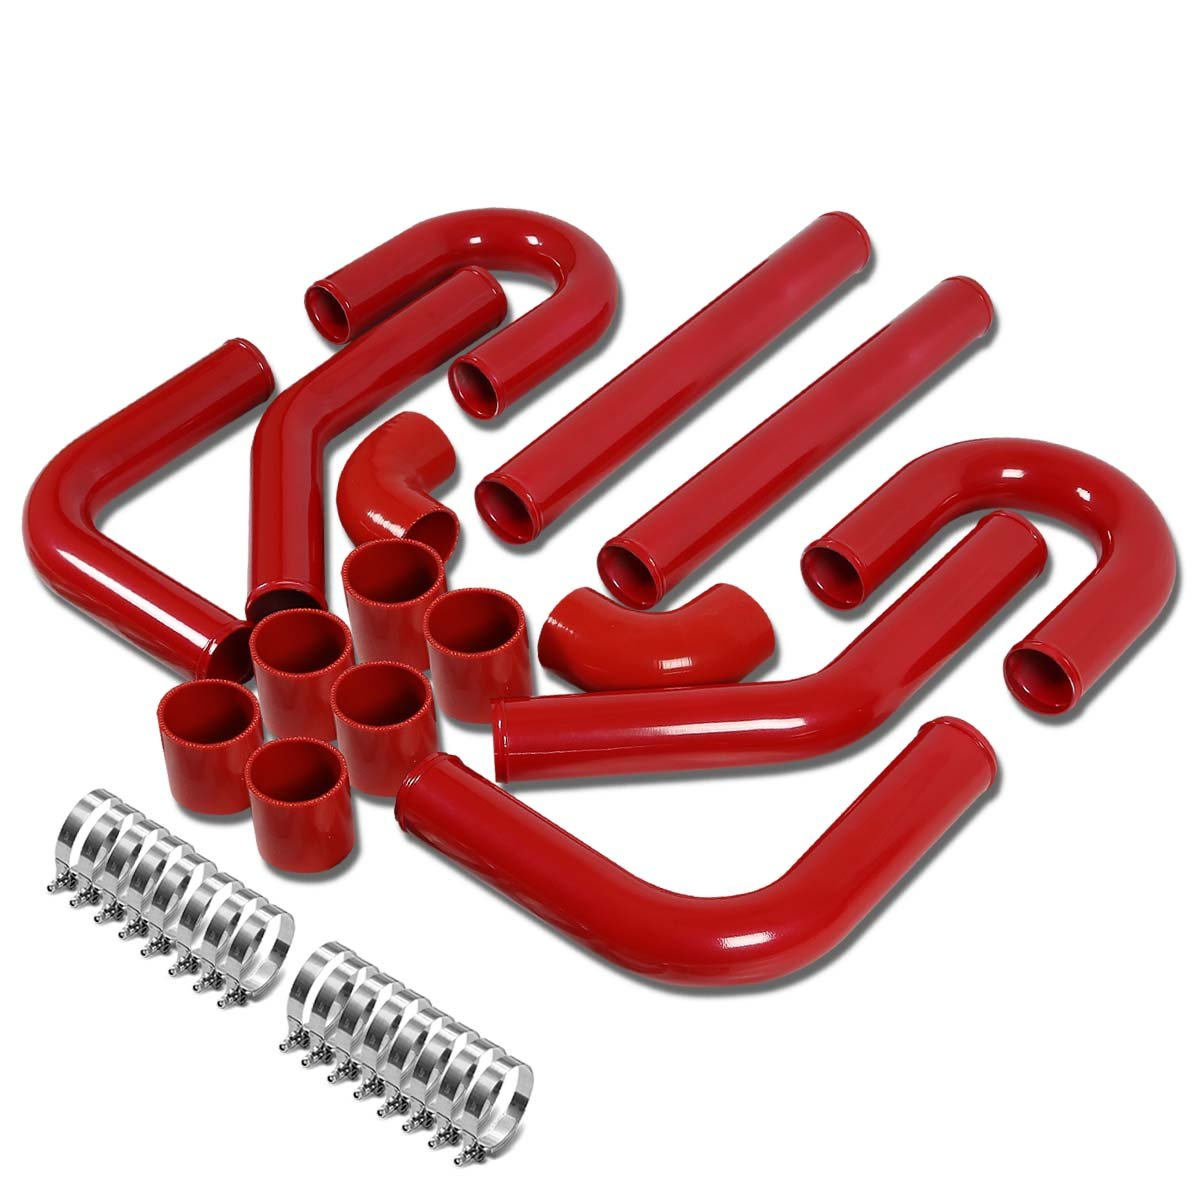 Universal 2' 8pcs Silver FMIC Front Mount Intercooler Piping+Silicone Hose+Clamps Kit Auto Dynasty